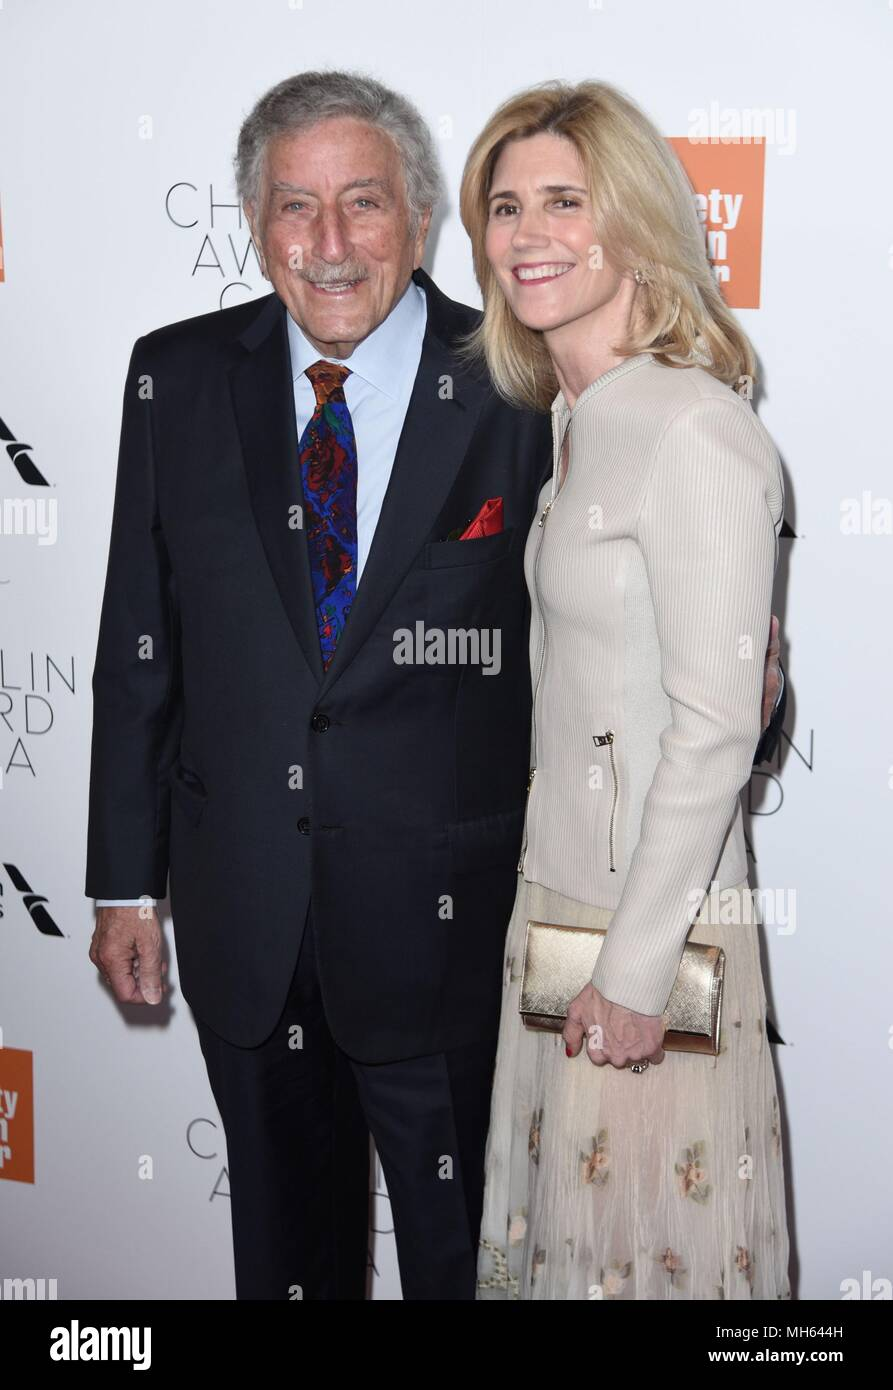 New York, NY, USA. 30th Apr, 2018. Tony Bennett, Susan Crow at arrivals for Film Society of Lincoln Center's 45th Chaplin Award Gala, Alice Tully Hall at Linocln Center, New York, NY April 30, 2018. Credit: Derek Storm/Everett Collection/Alamy Live News - Stock Image